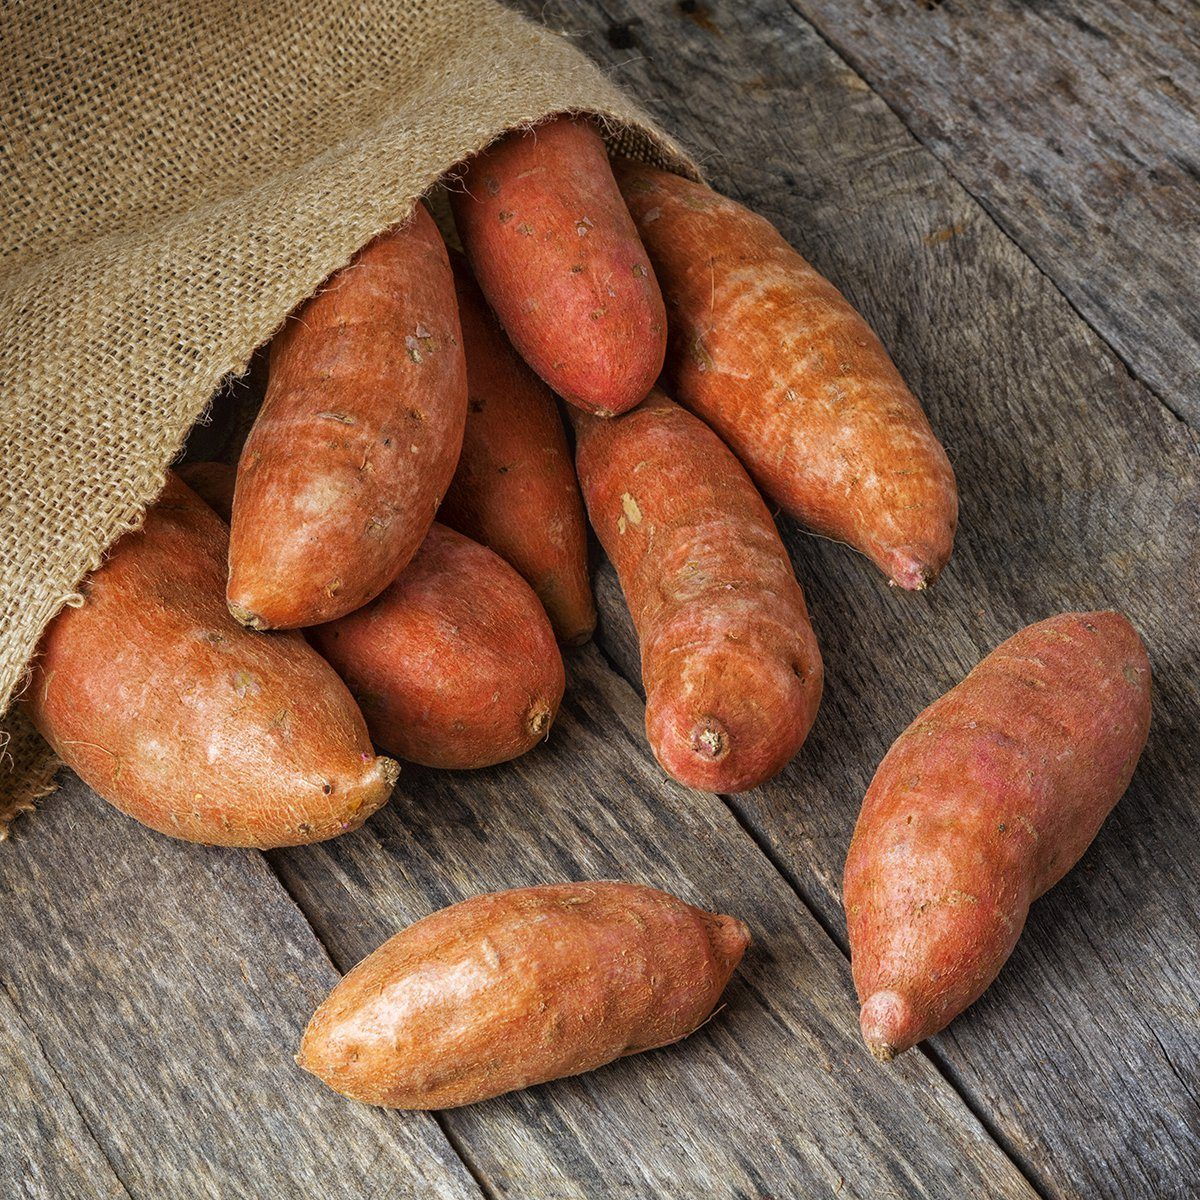 Freshly harvested organic sweet potatoes spilling from a burlap bag onto a natural weathered wood table.